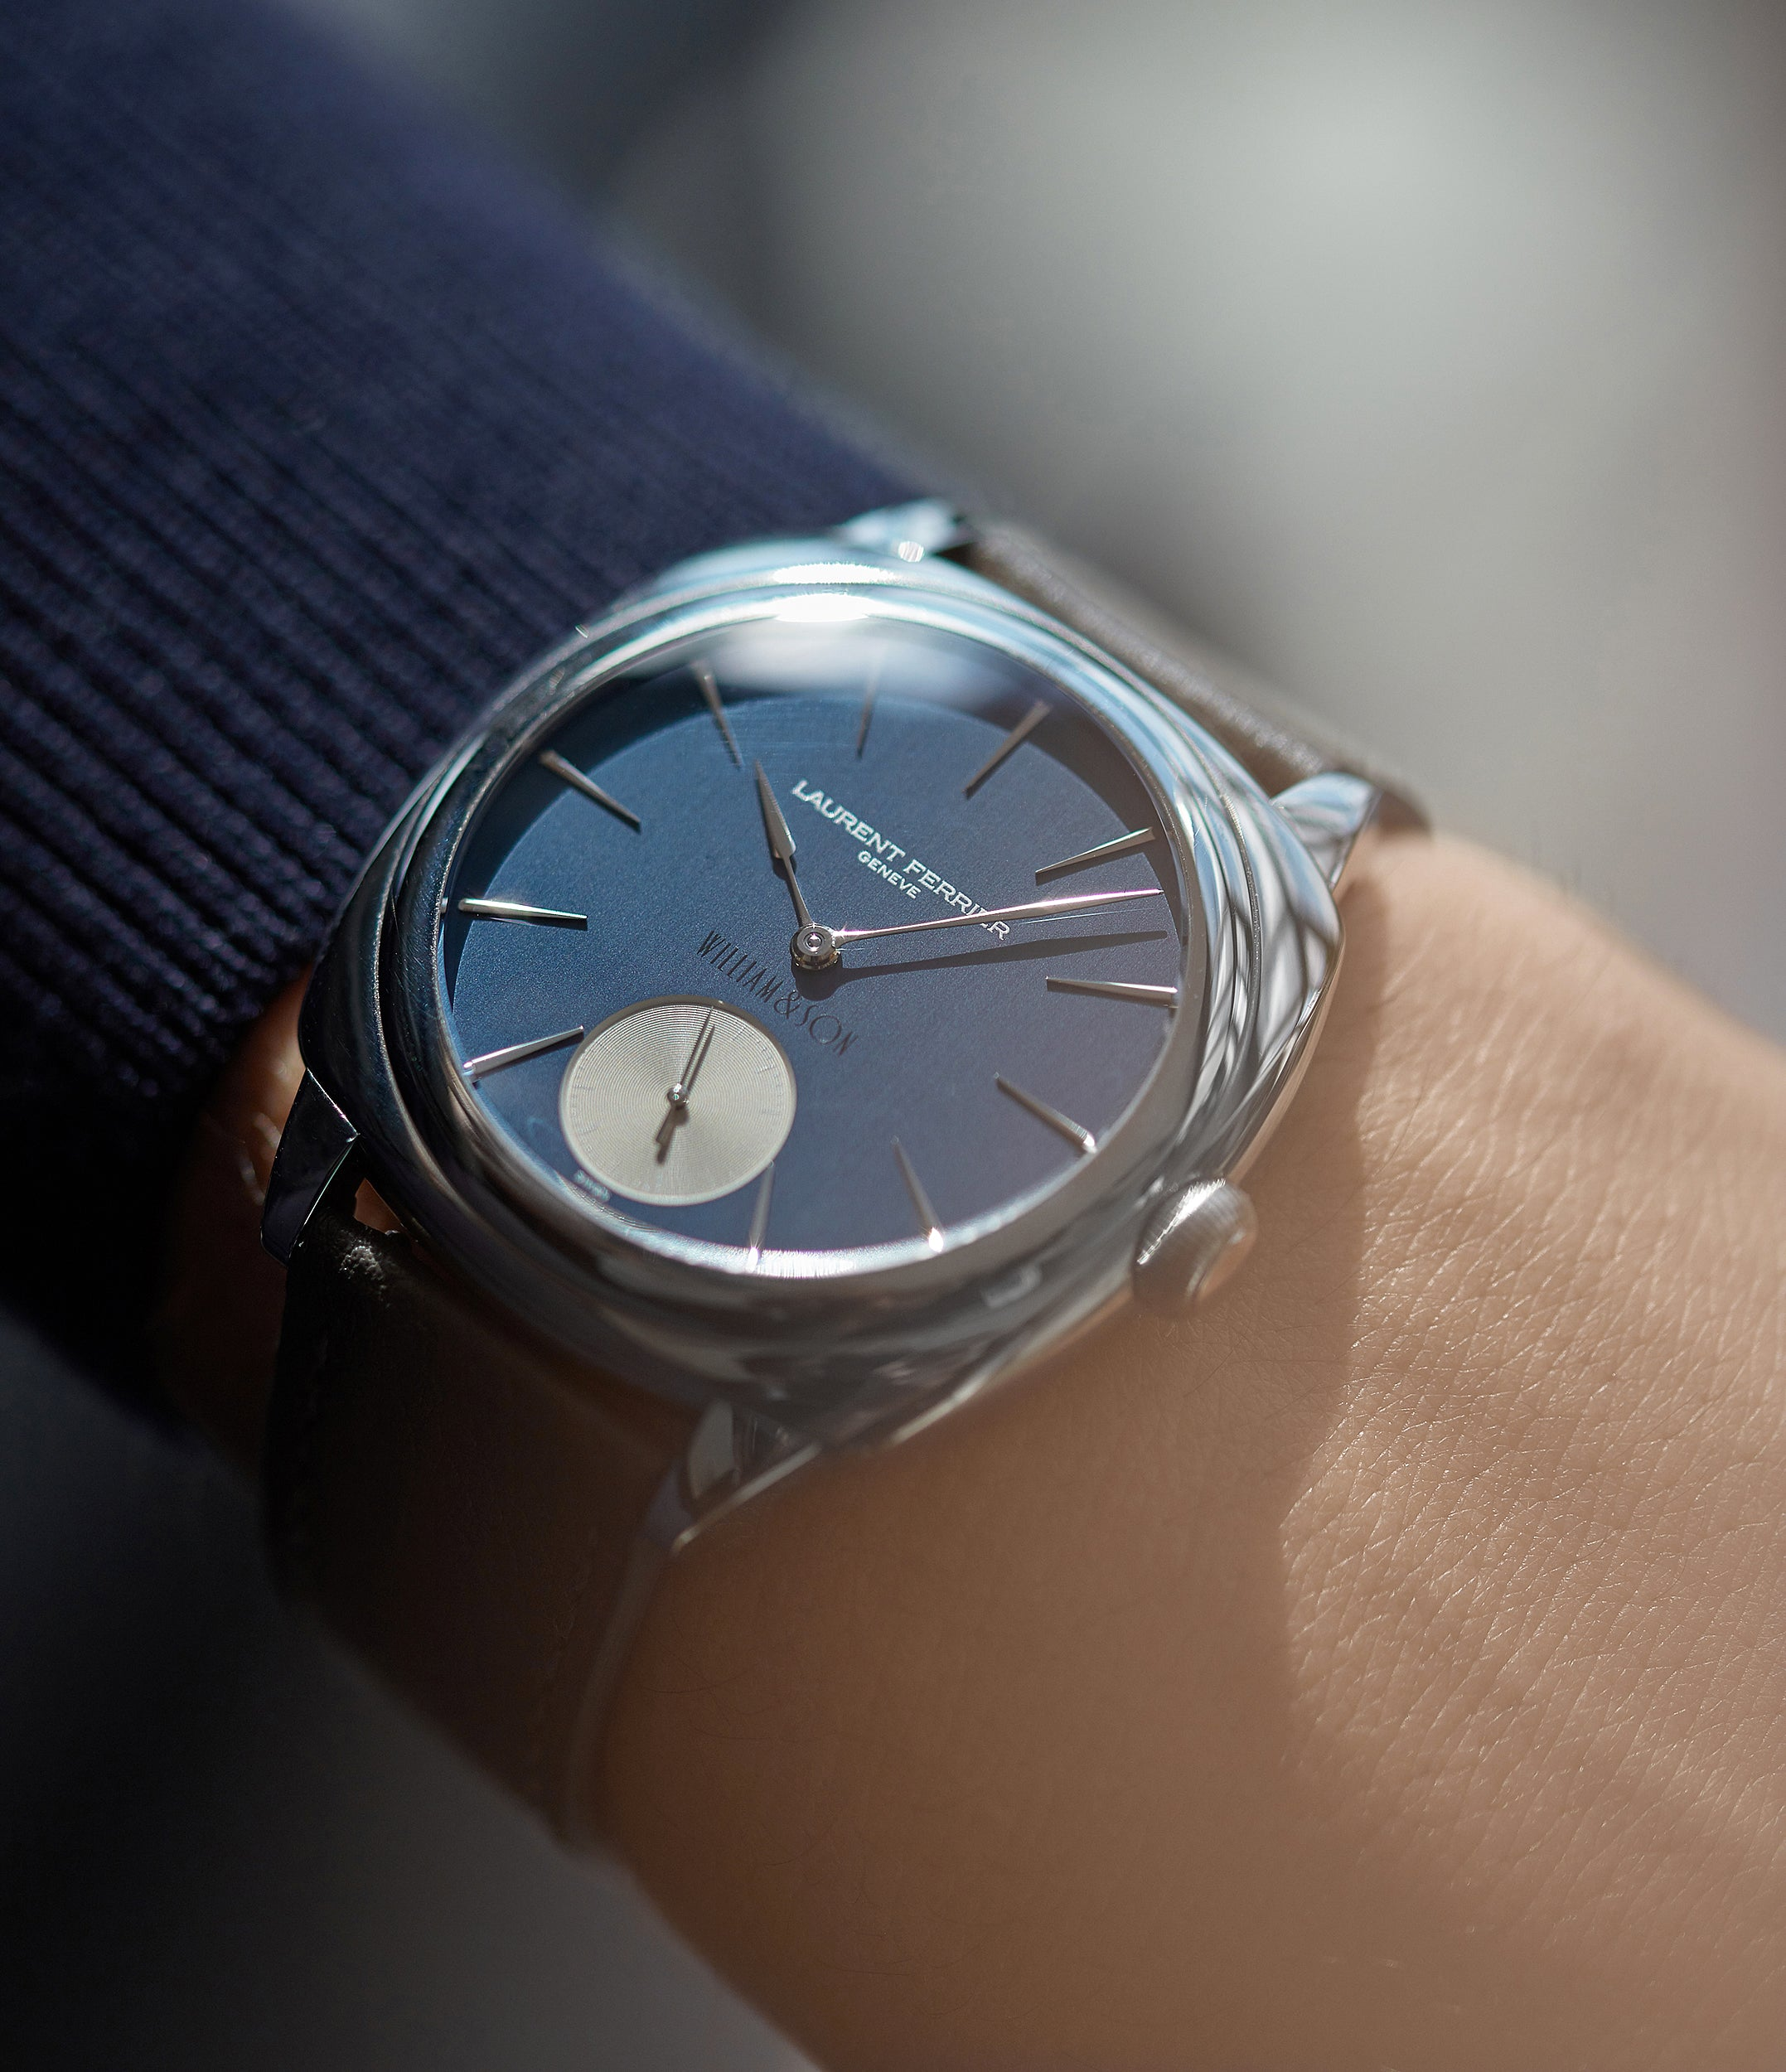 for sale preowned Laurent Ferrier Micro Rotor LF 229.01 Galet Square William&Son blue dial white gold watch online at A Collected Man London approved seller of preowned independent watchmakers